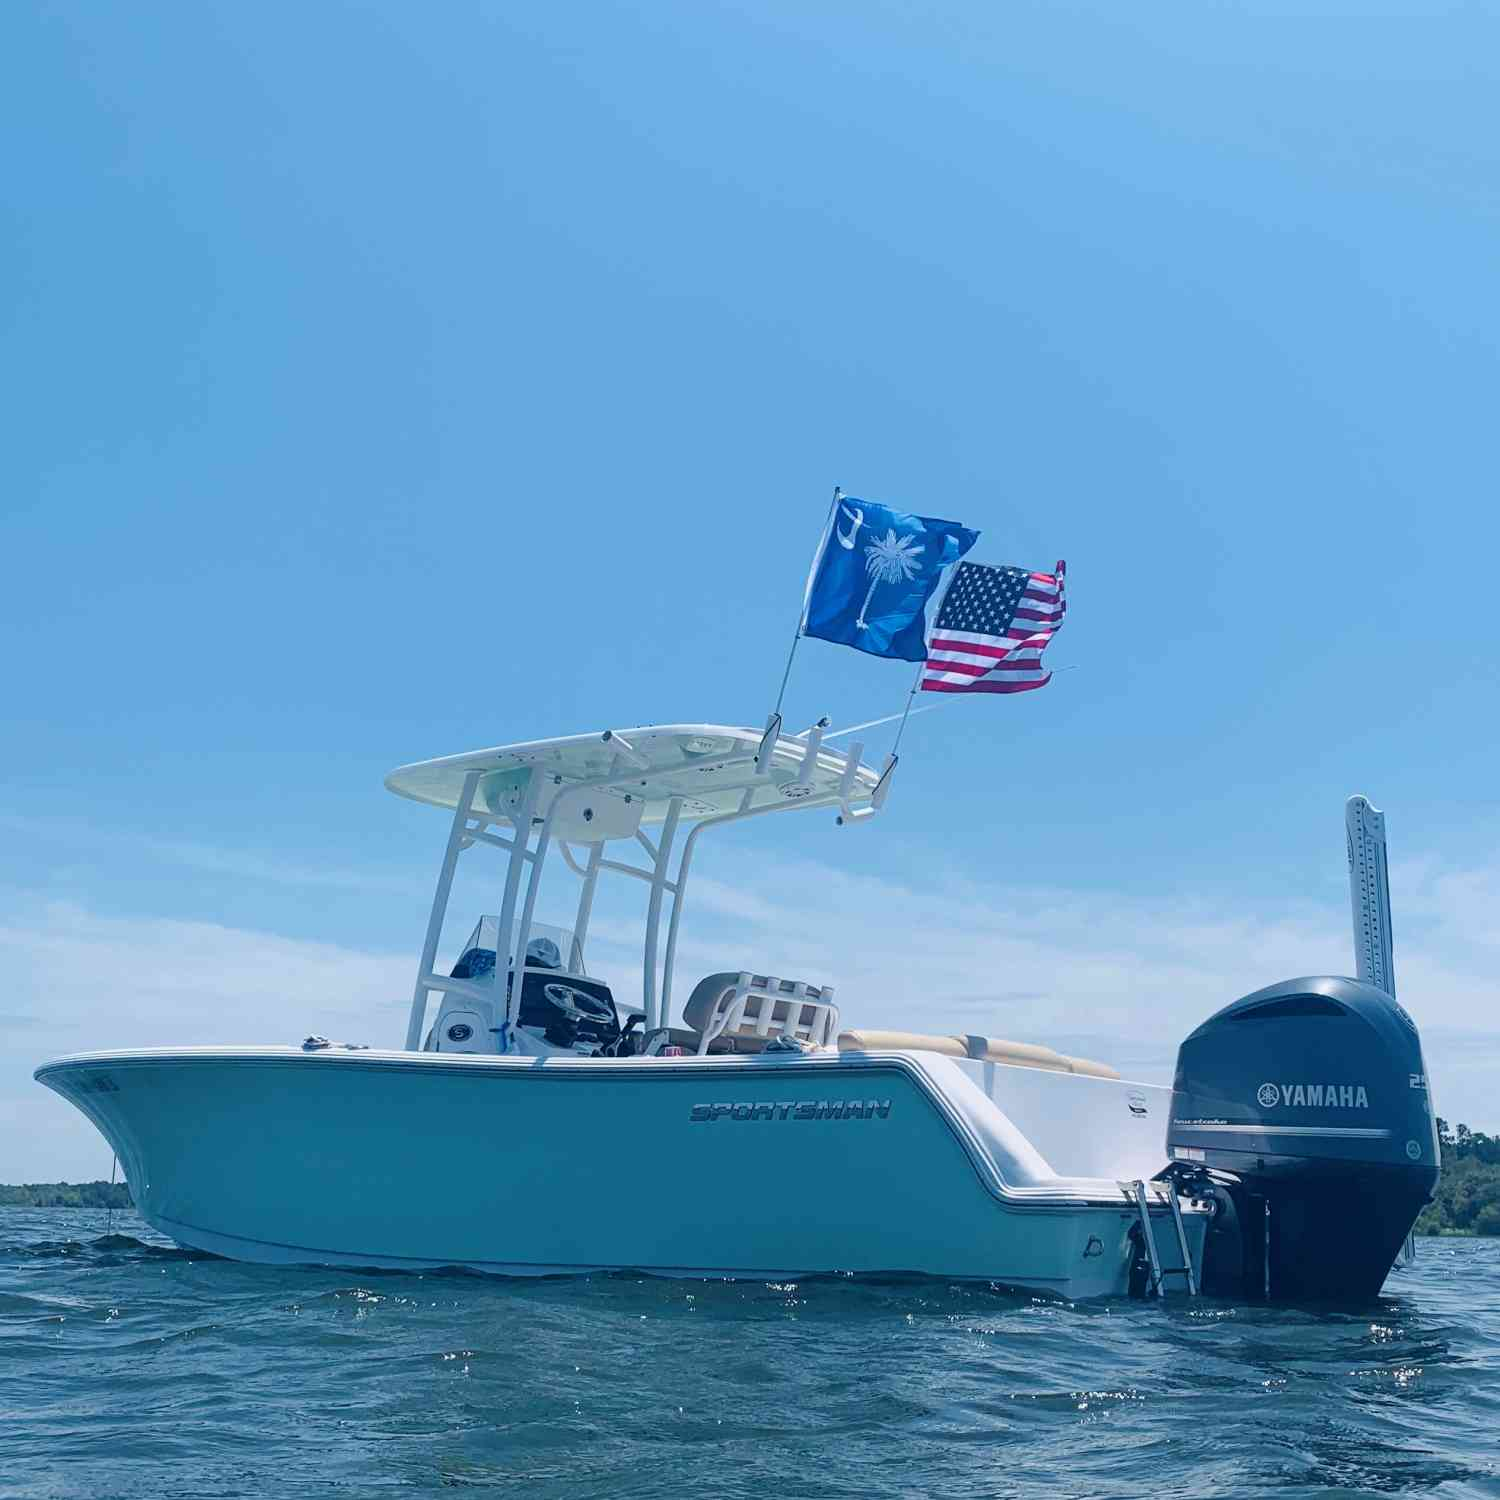 Title: Thankful for God's Many Blessings - On board their Sportsman Heritage 231 Center Console - Location: Manning, SC. Participating in the Photo Contest #SportsmanAugust2019